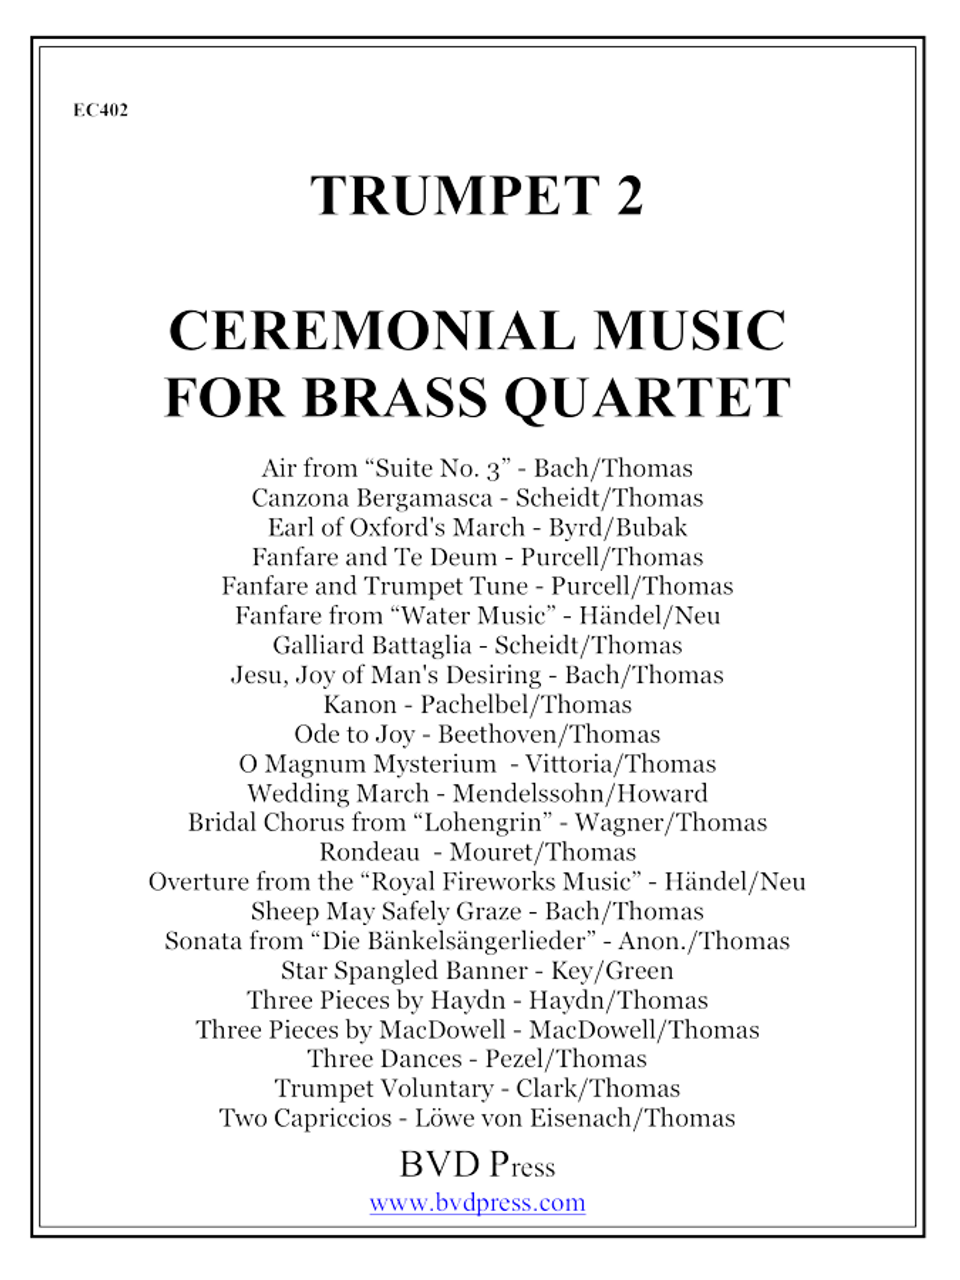 Ceremonial Music for Brass Quartet Trumpet 2 PDF Download